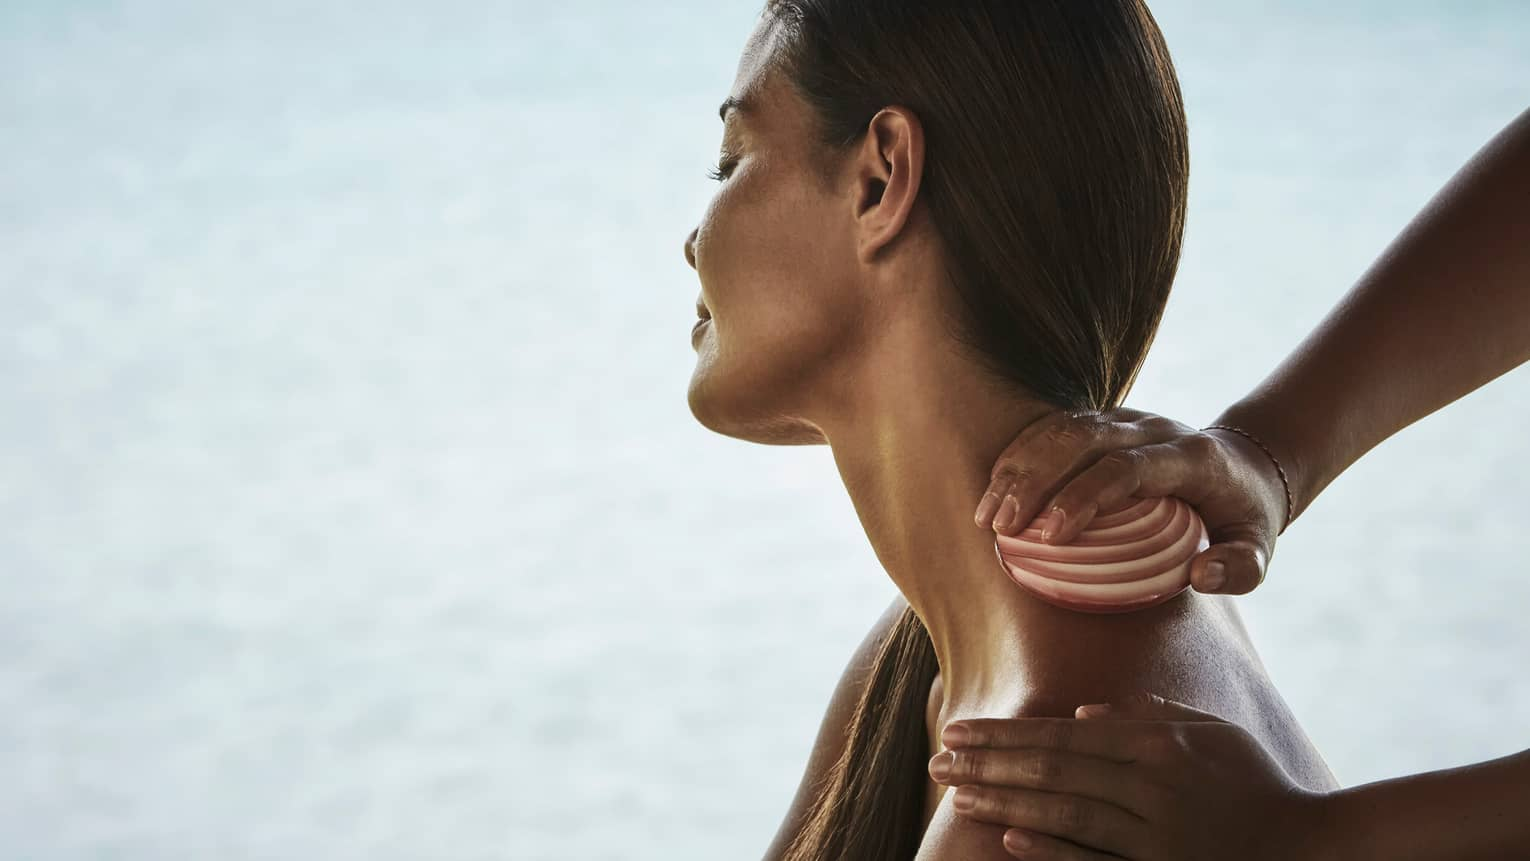 Side close-up of woman from shoulders up with head tilted to side as masseuse rubs seashell down her neck